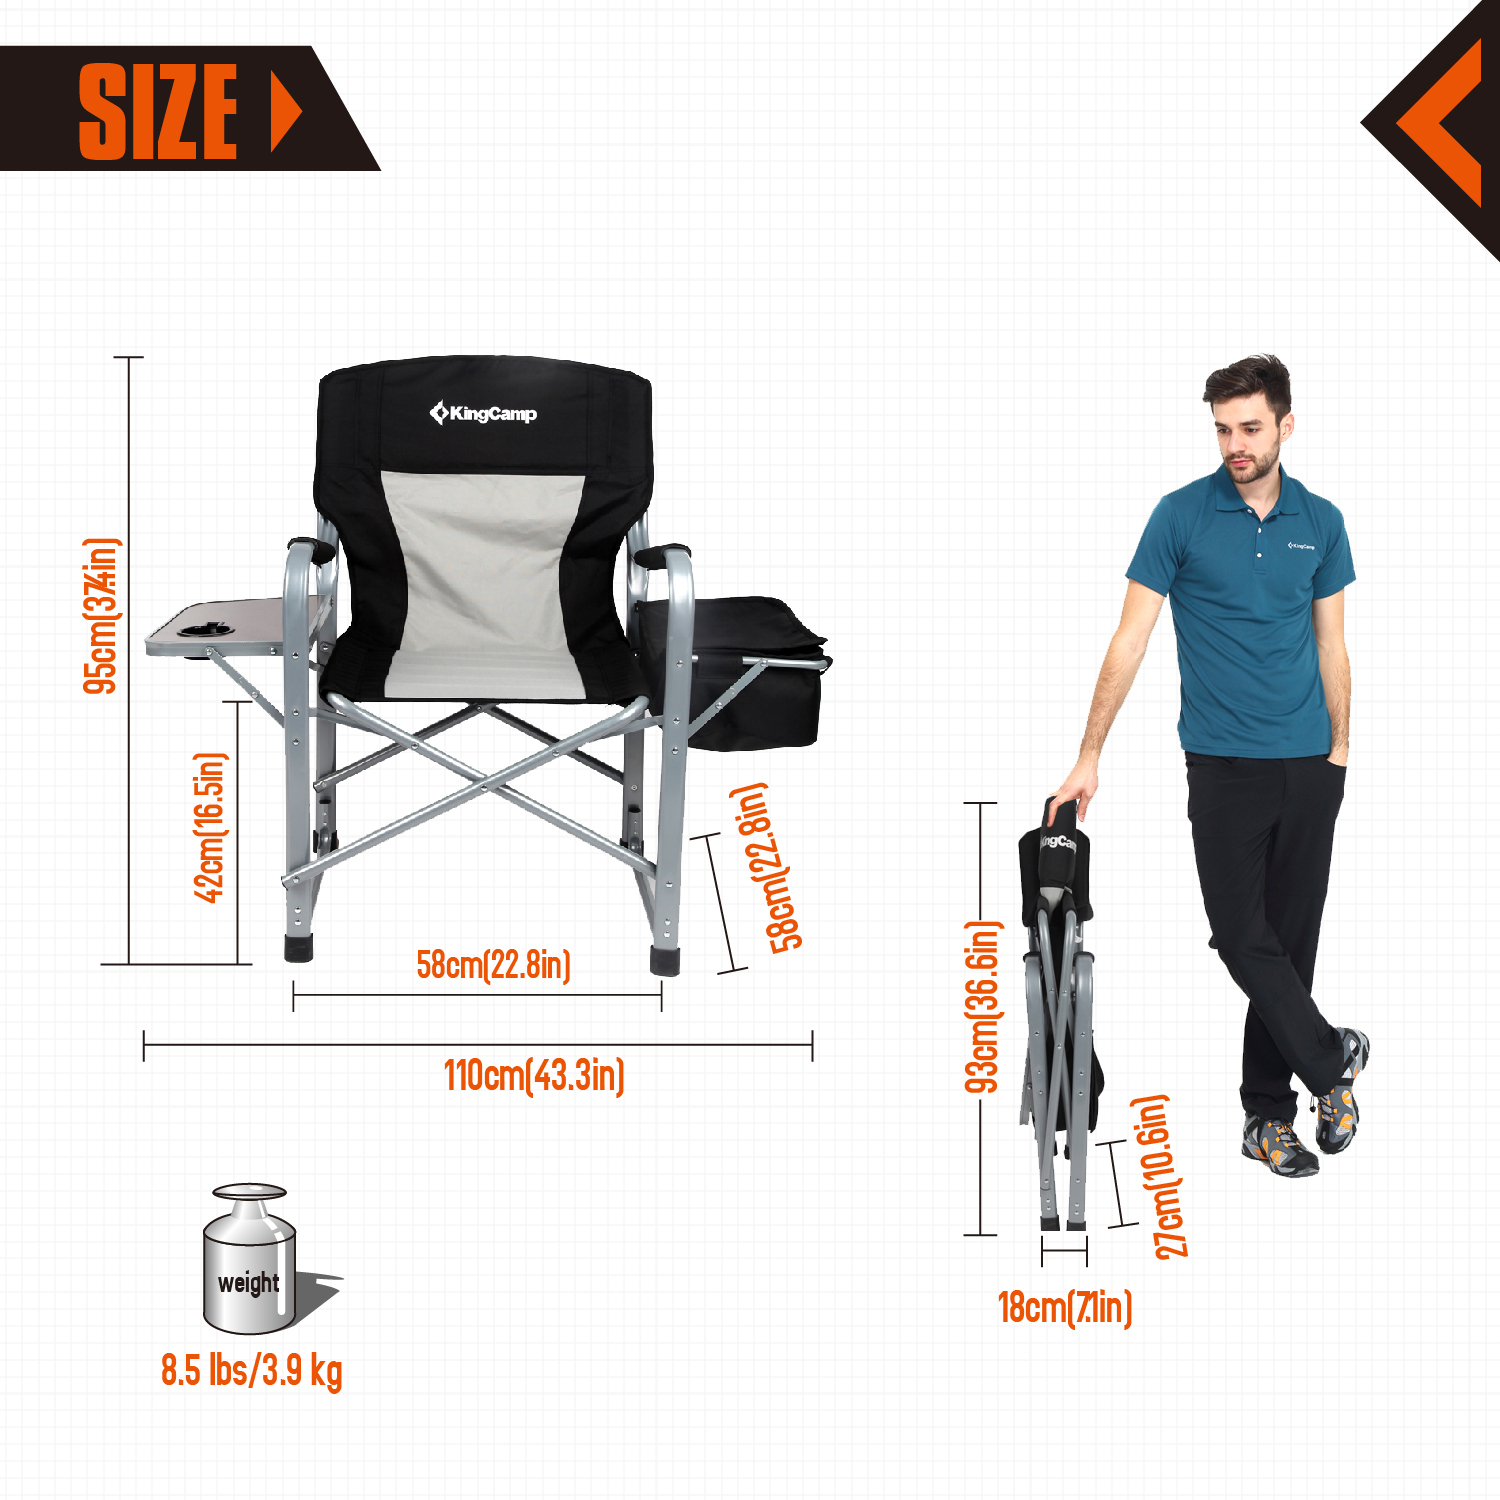 KingCamp Heavy Duty Steel Folding Chair / Directoru0027s Chair W